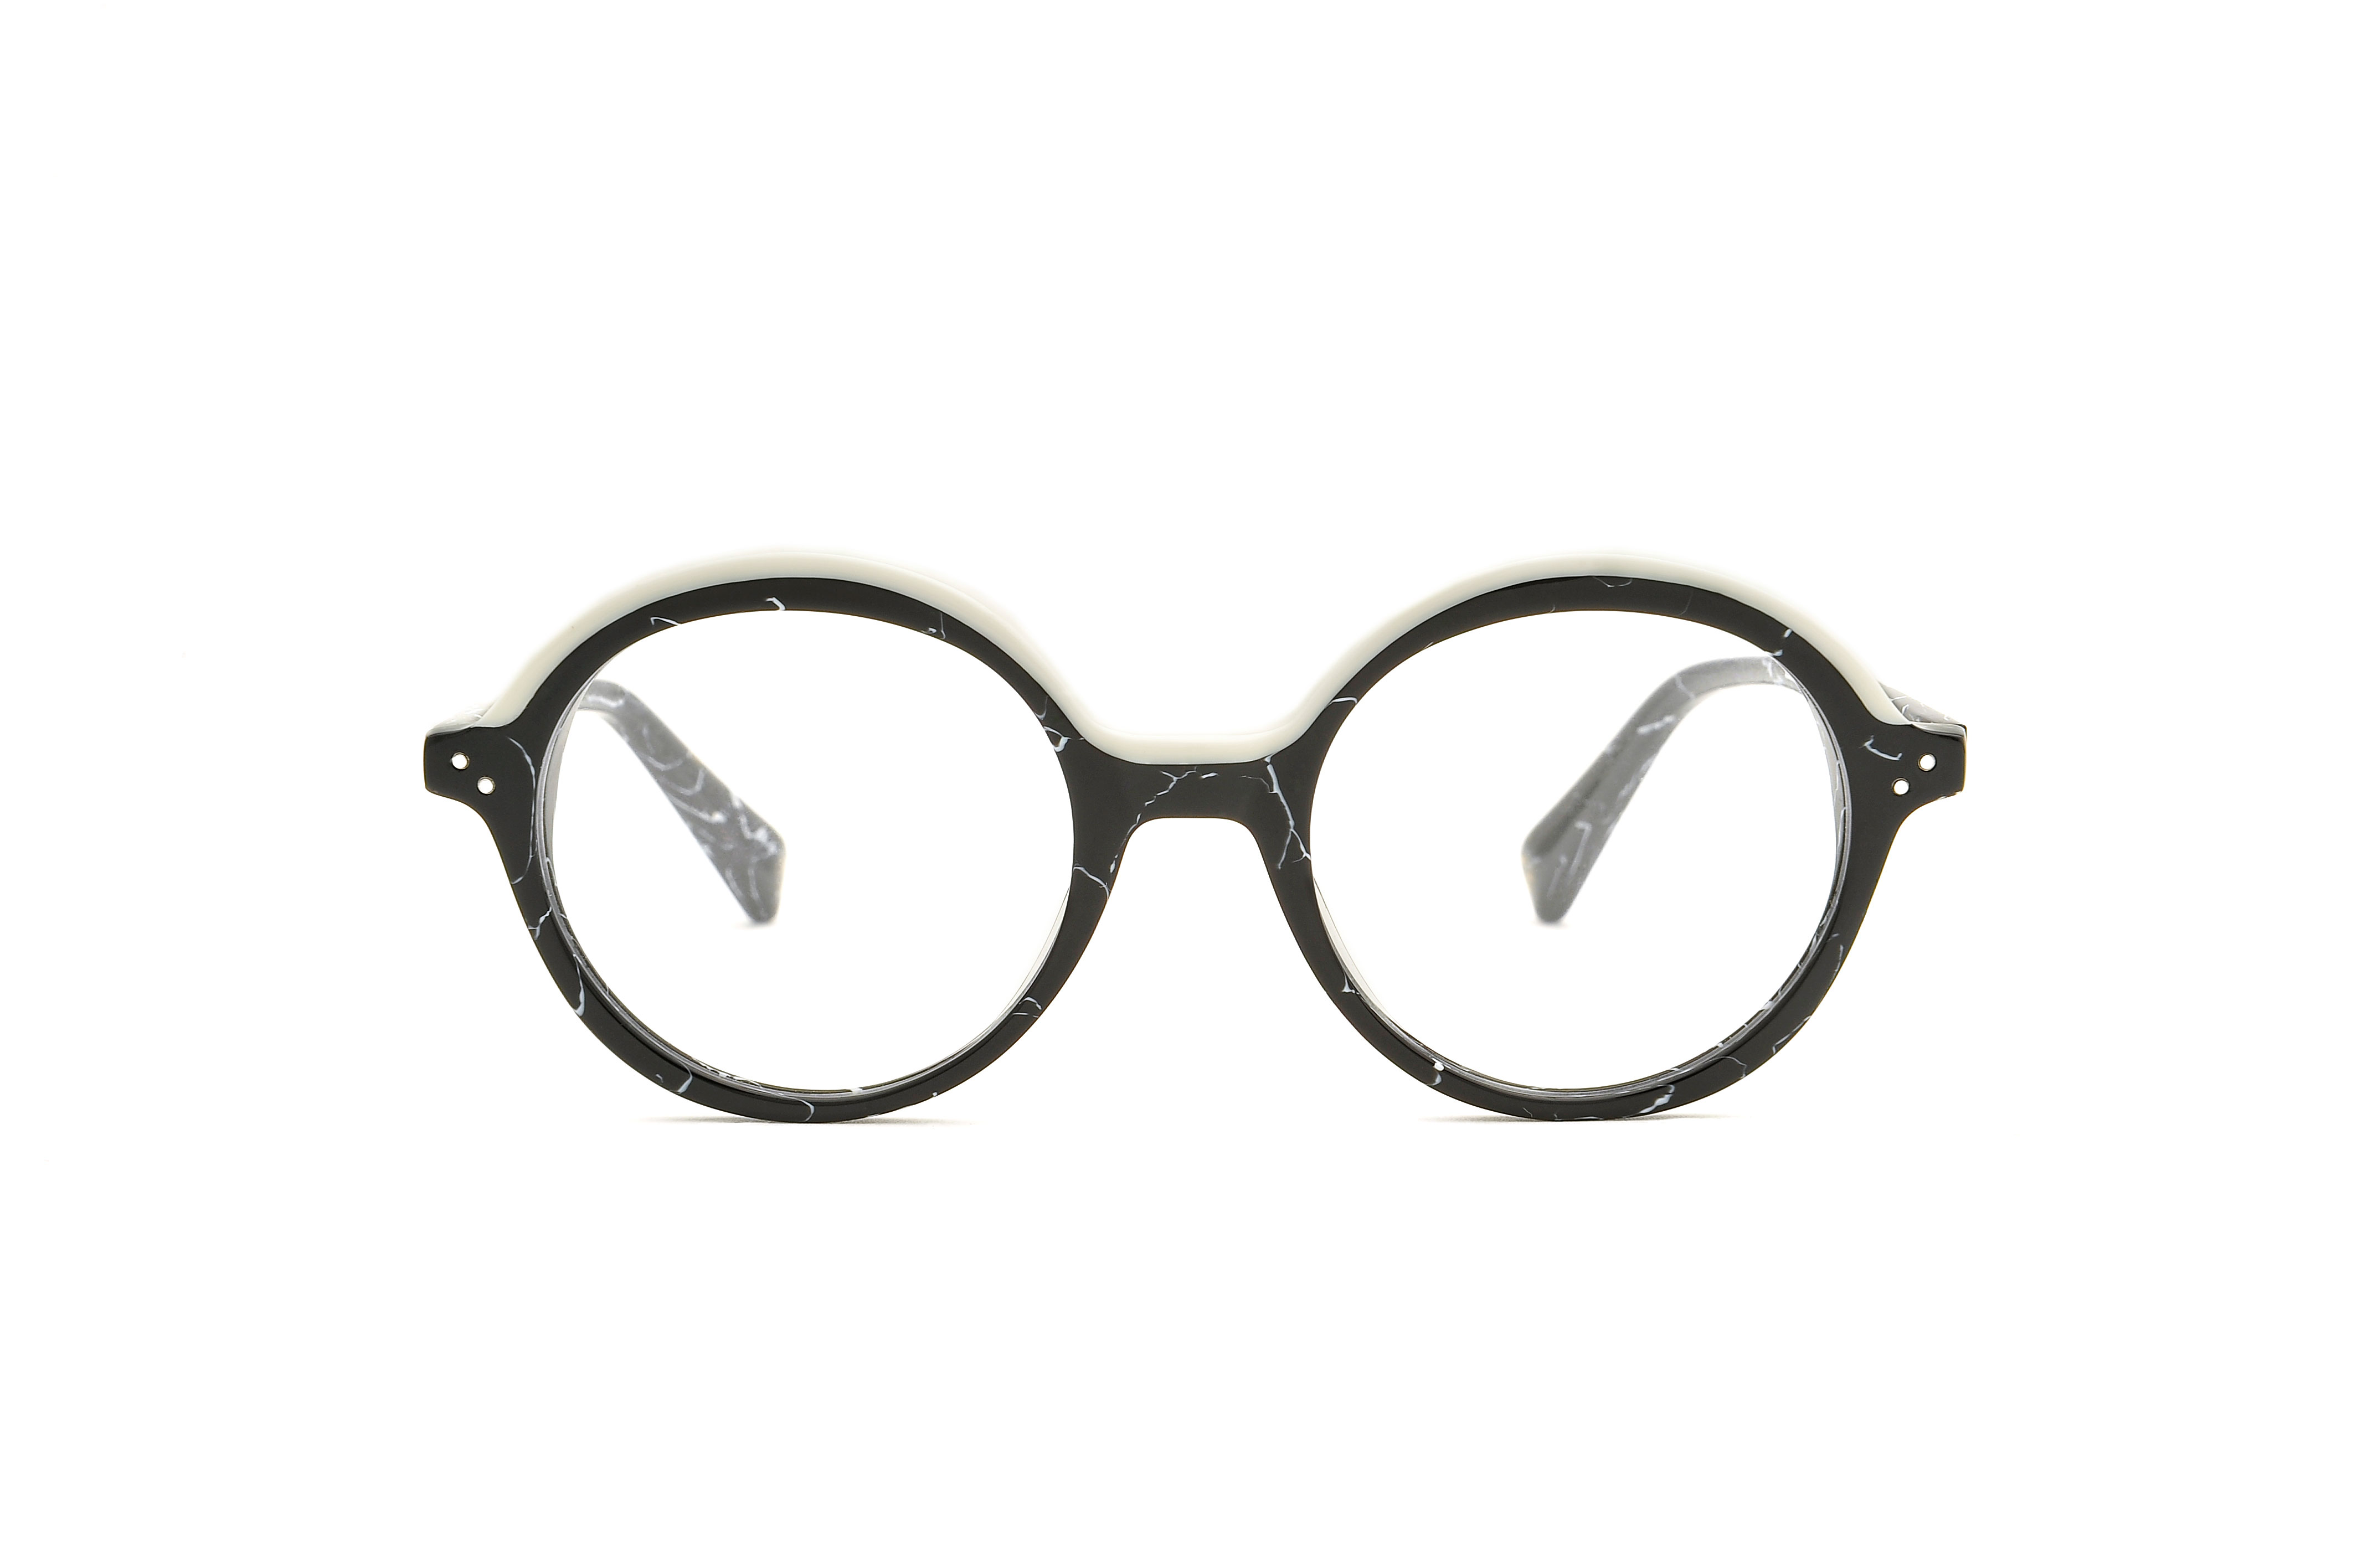 Dalston acetate rounded black sunglasses by GIGI Studios